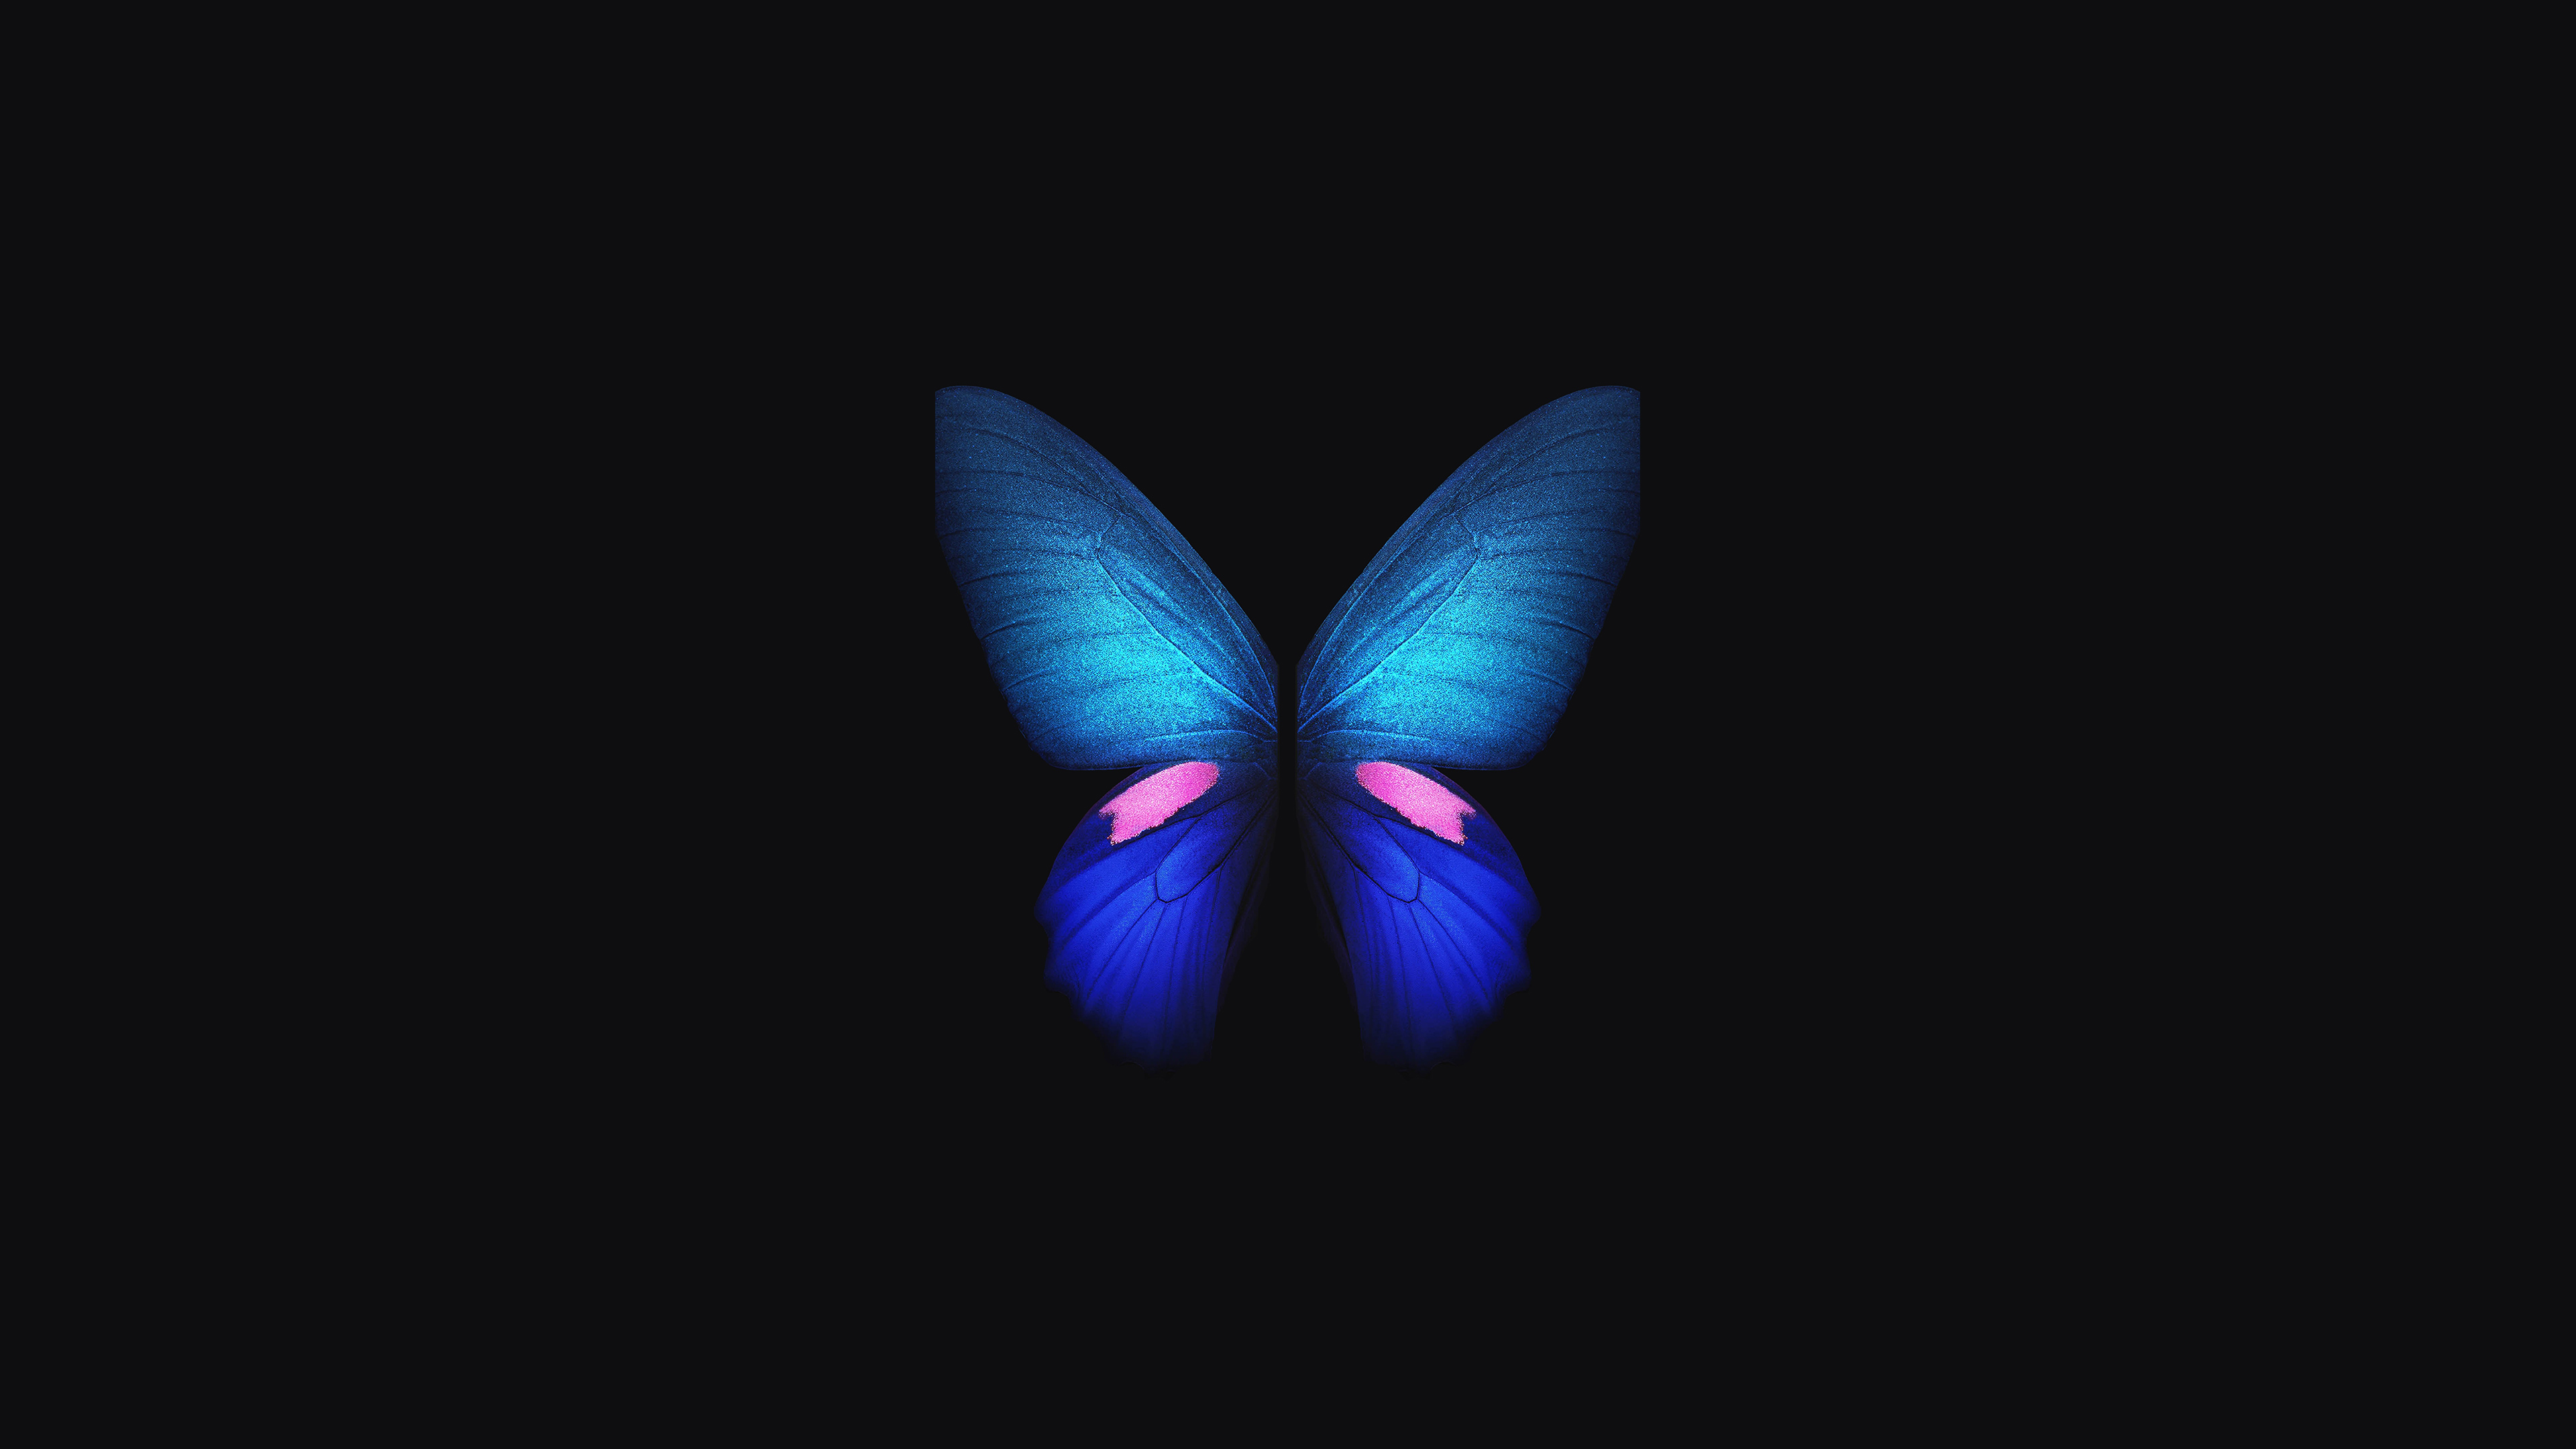 Samsung Galaxy Fold Stock Hd Artist 4k Wallpapers Images Backgrounds Photos And Pictures